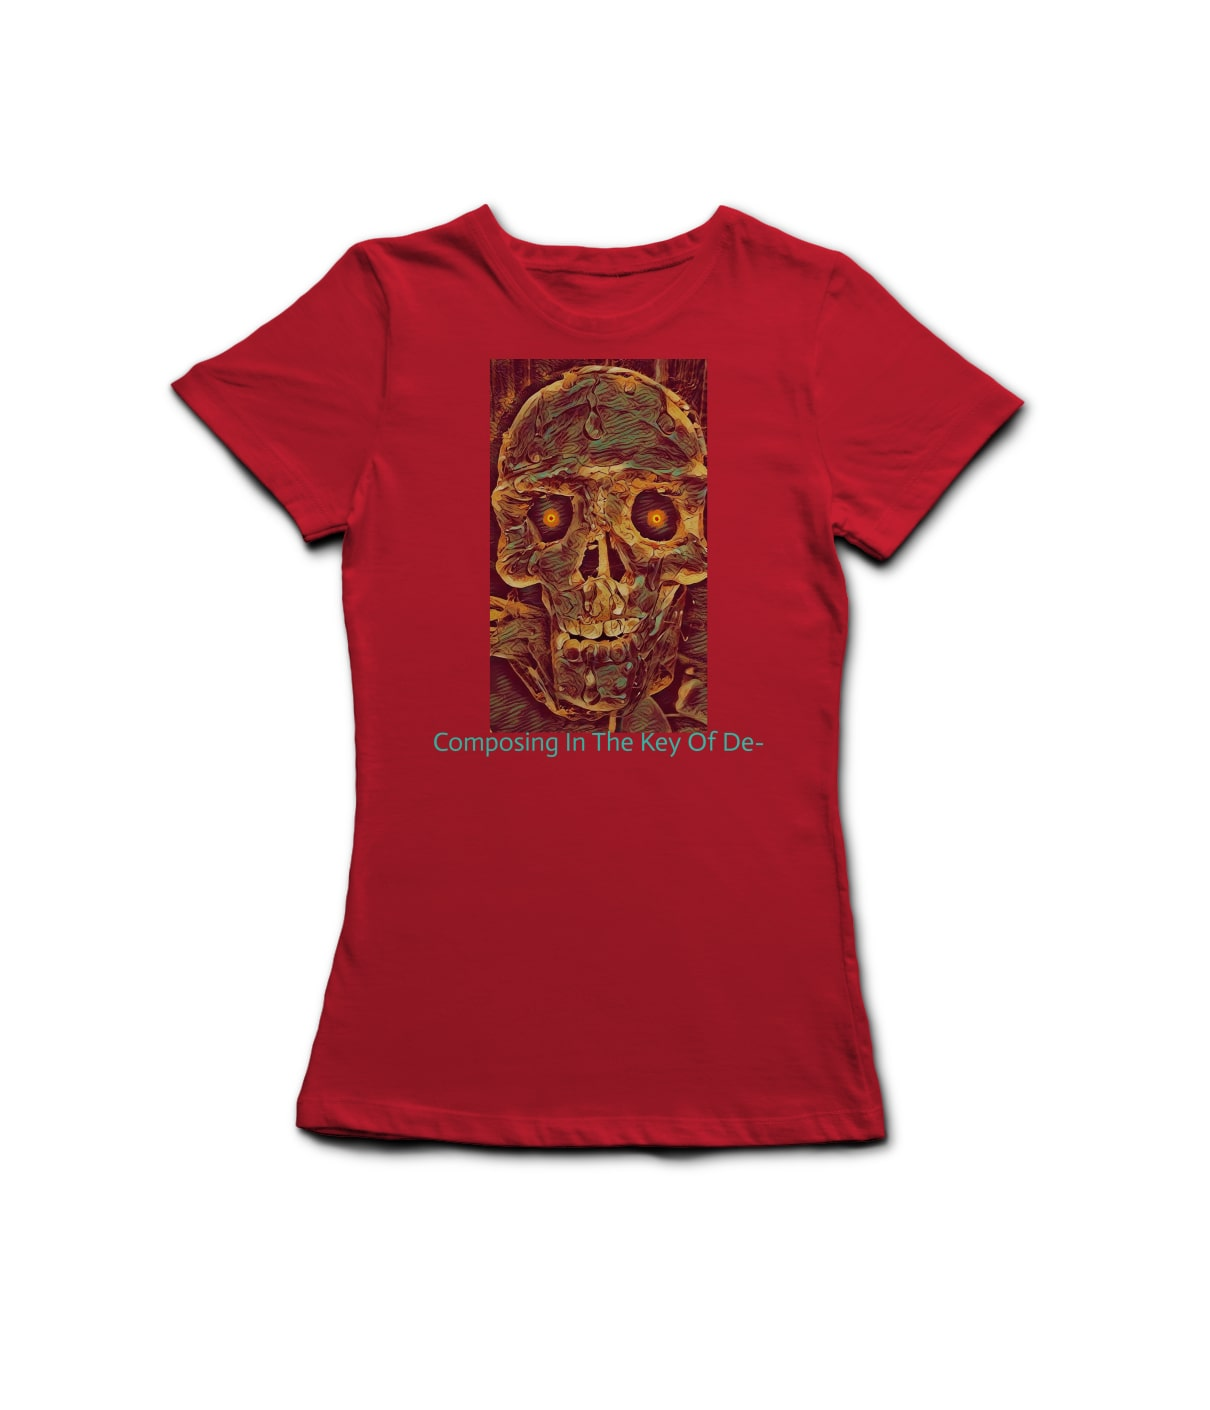 L t shirt red jomjry